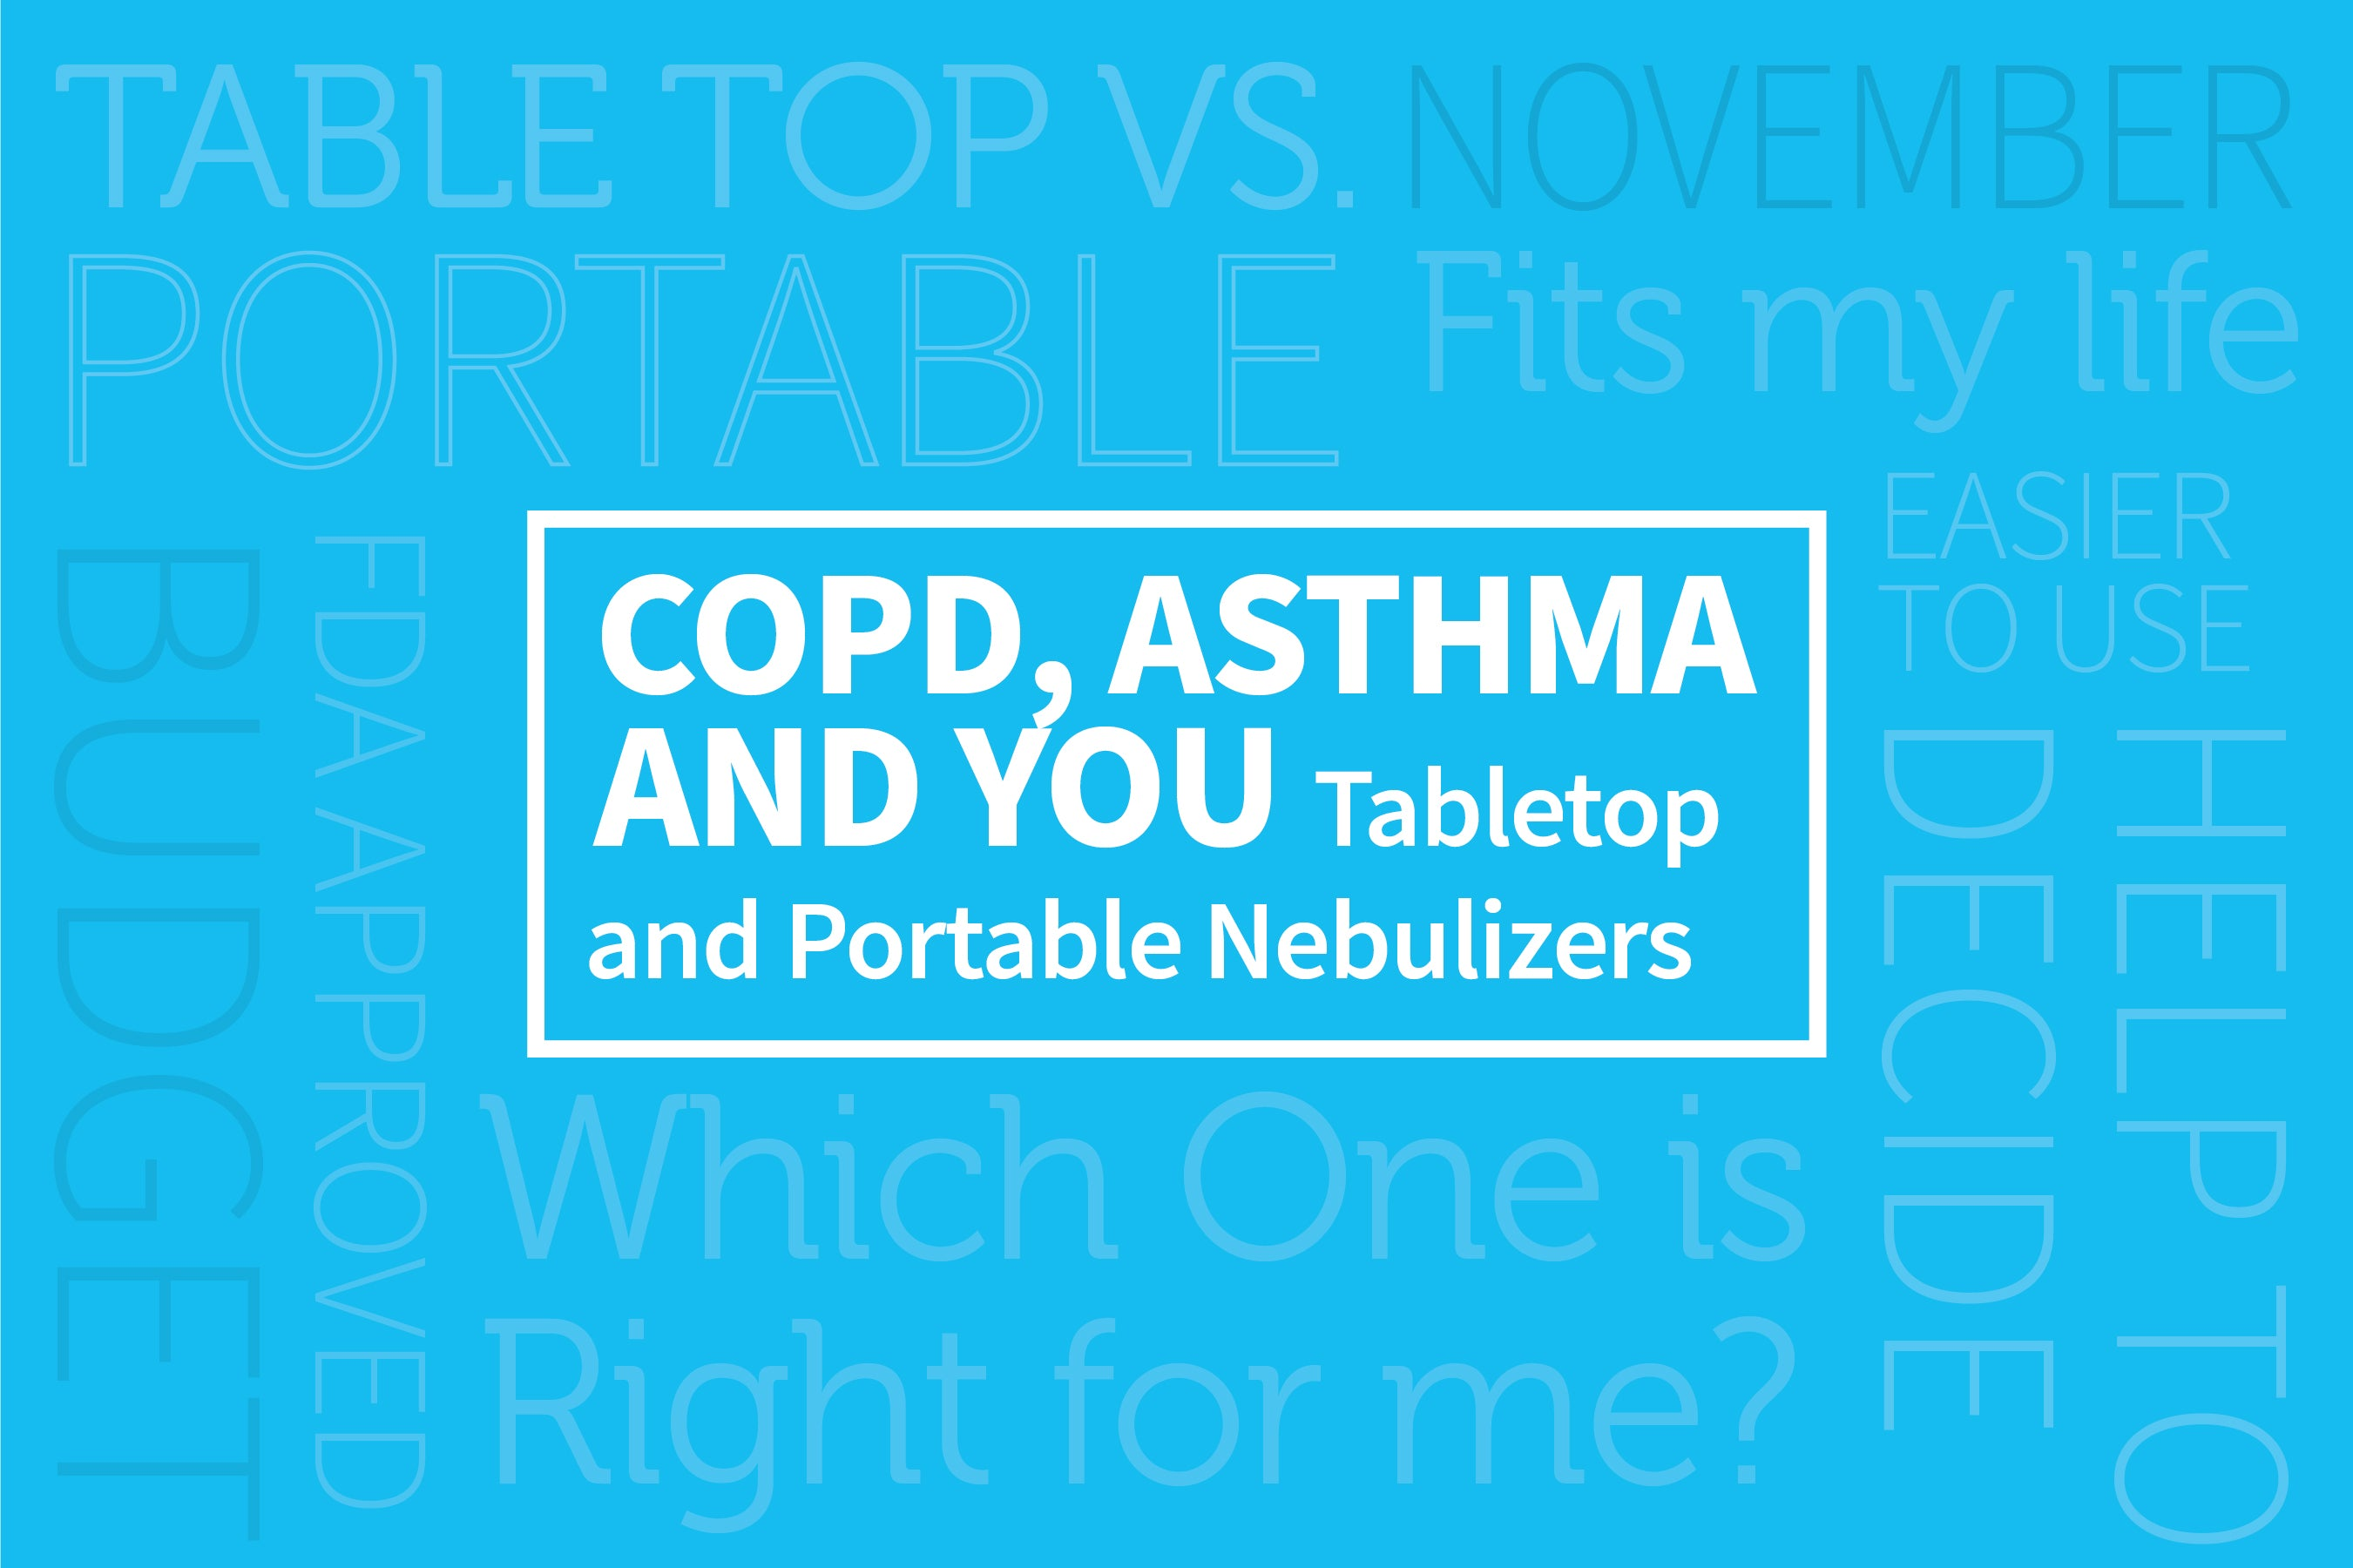 COPD, Asthma, and YOU: Tabletop and Portable Nebulizers